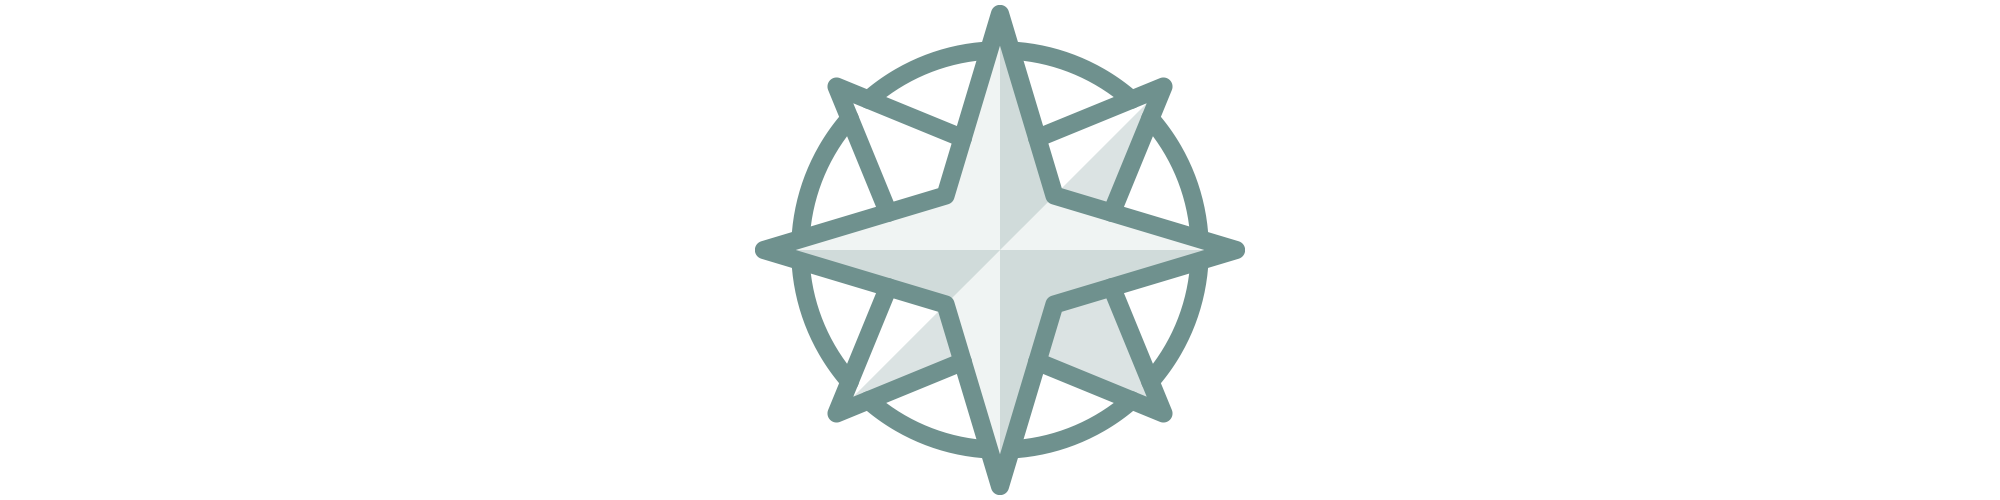 compass-rose-icon.png